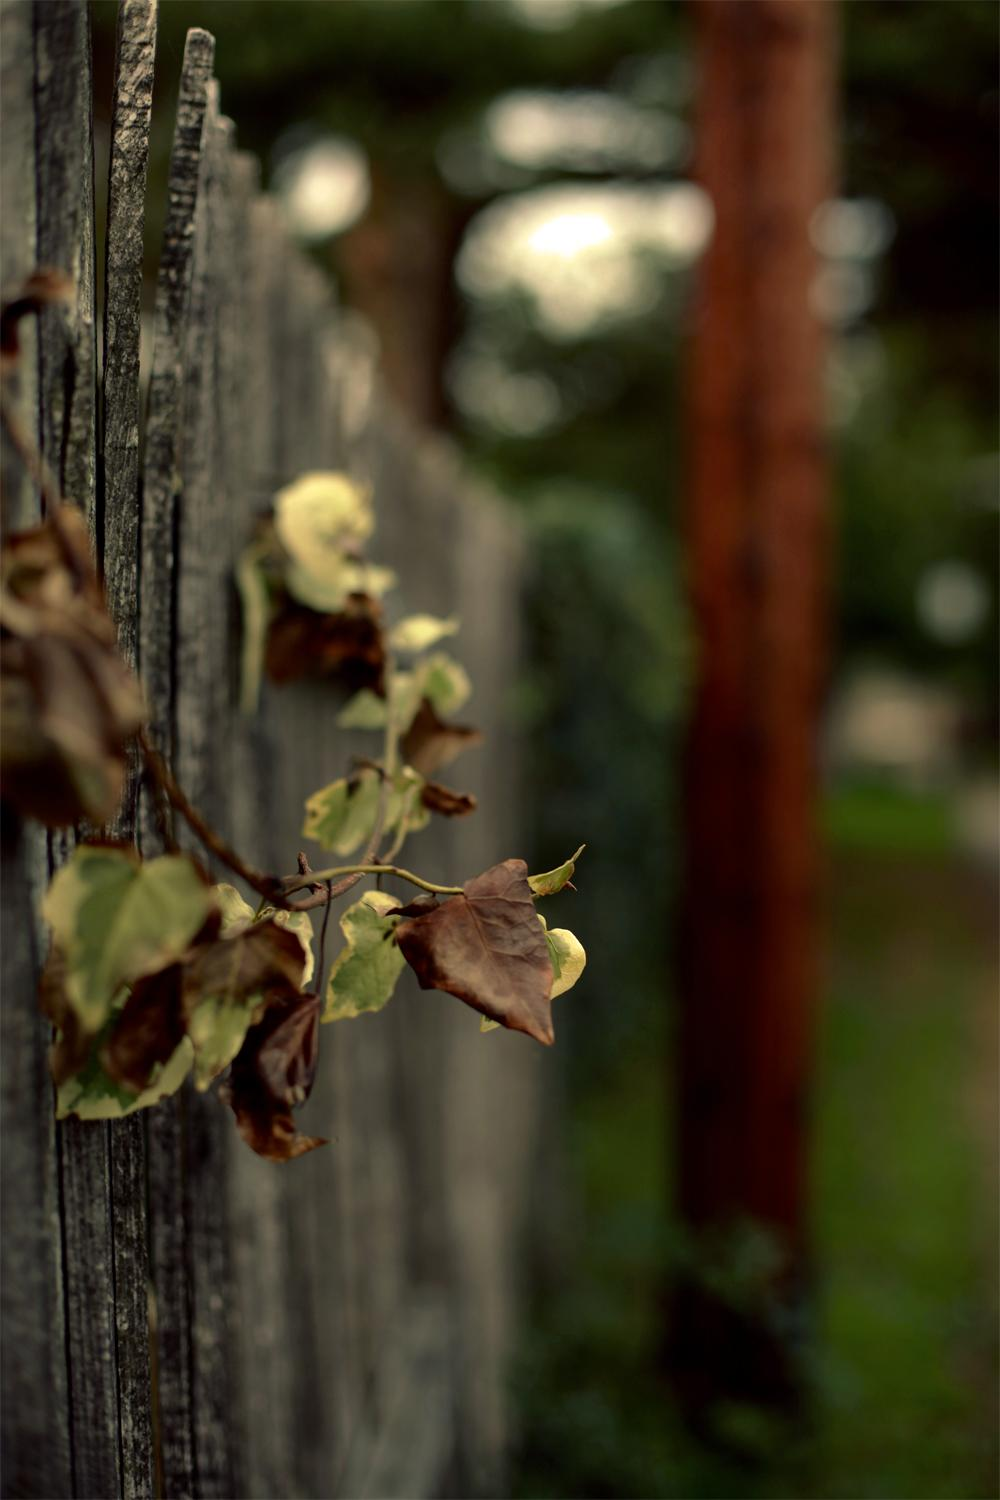 Dying Ivy